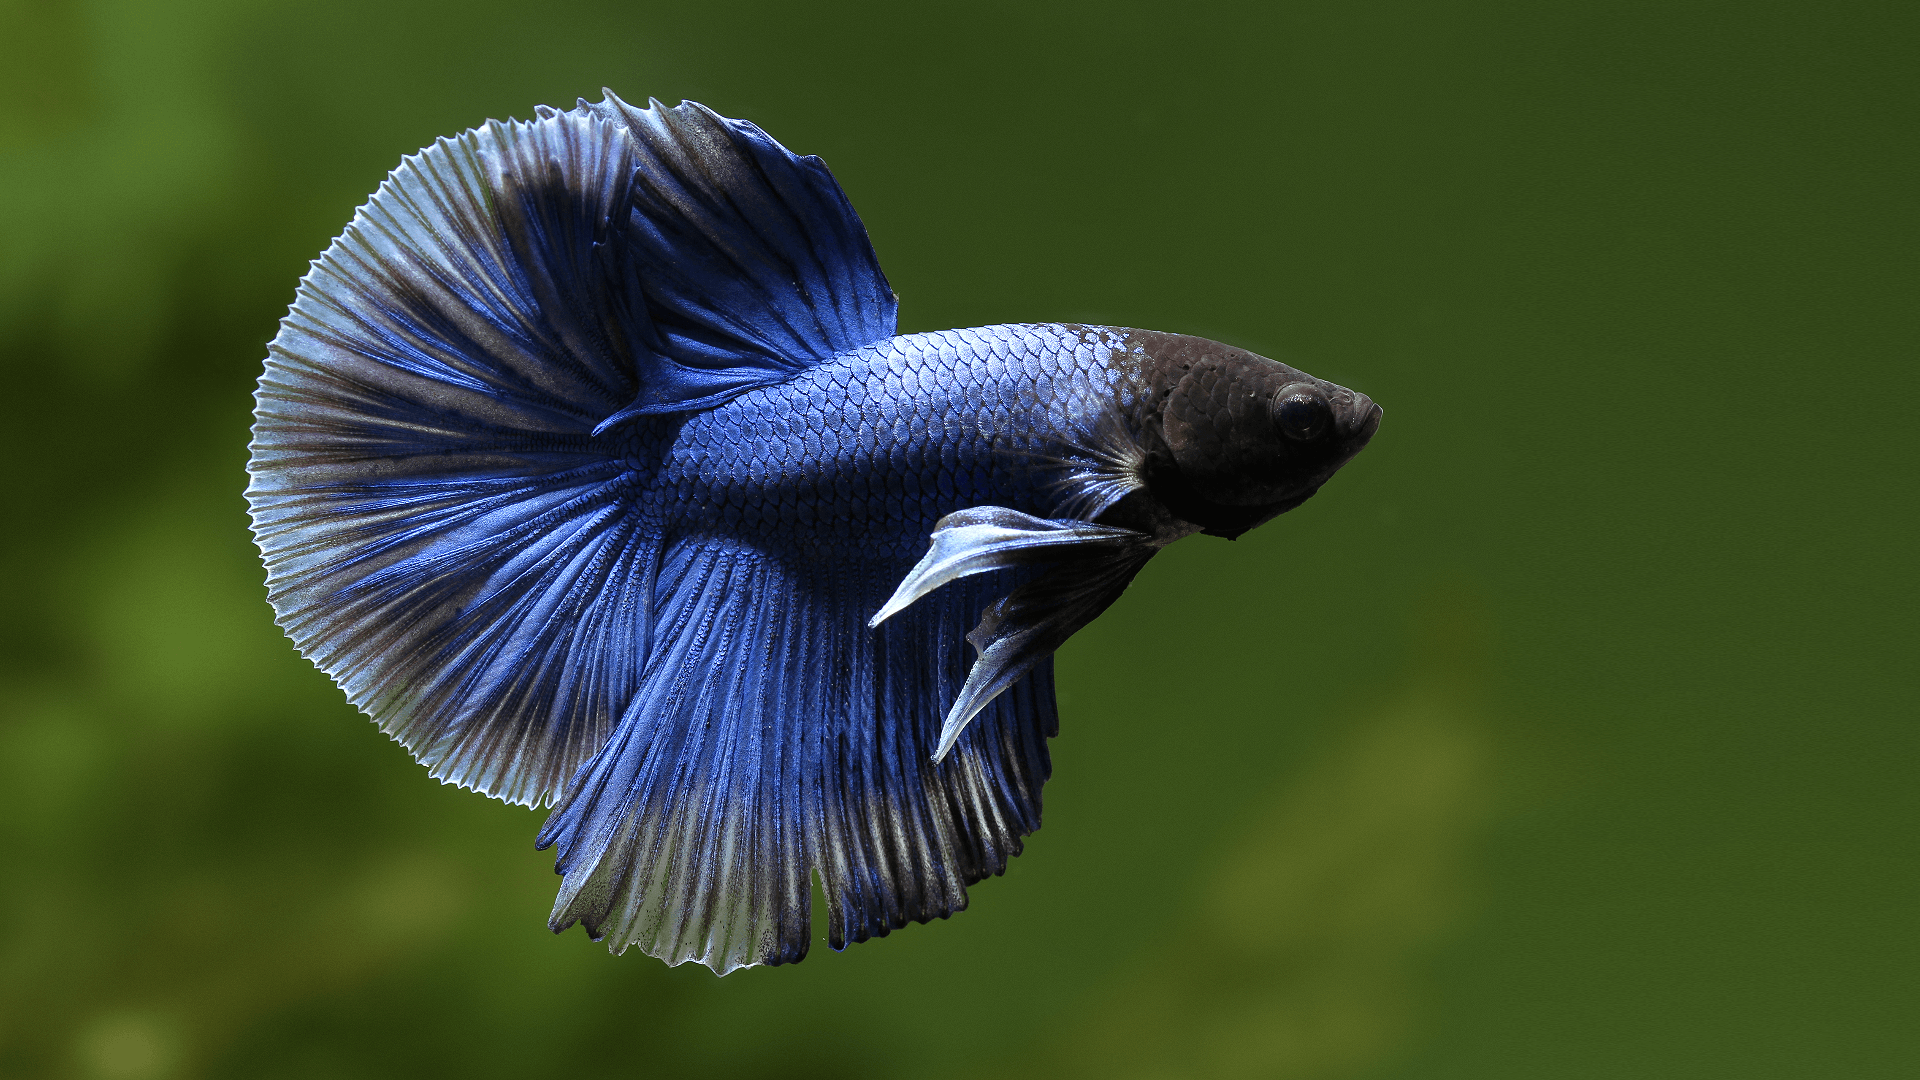 Betta Fish Wallpapers Wallpaper Cave